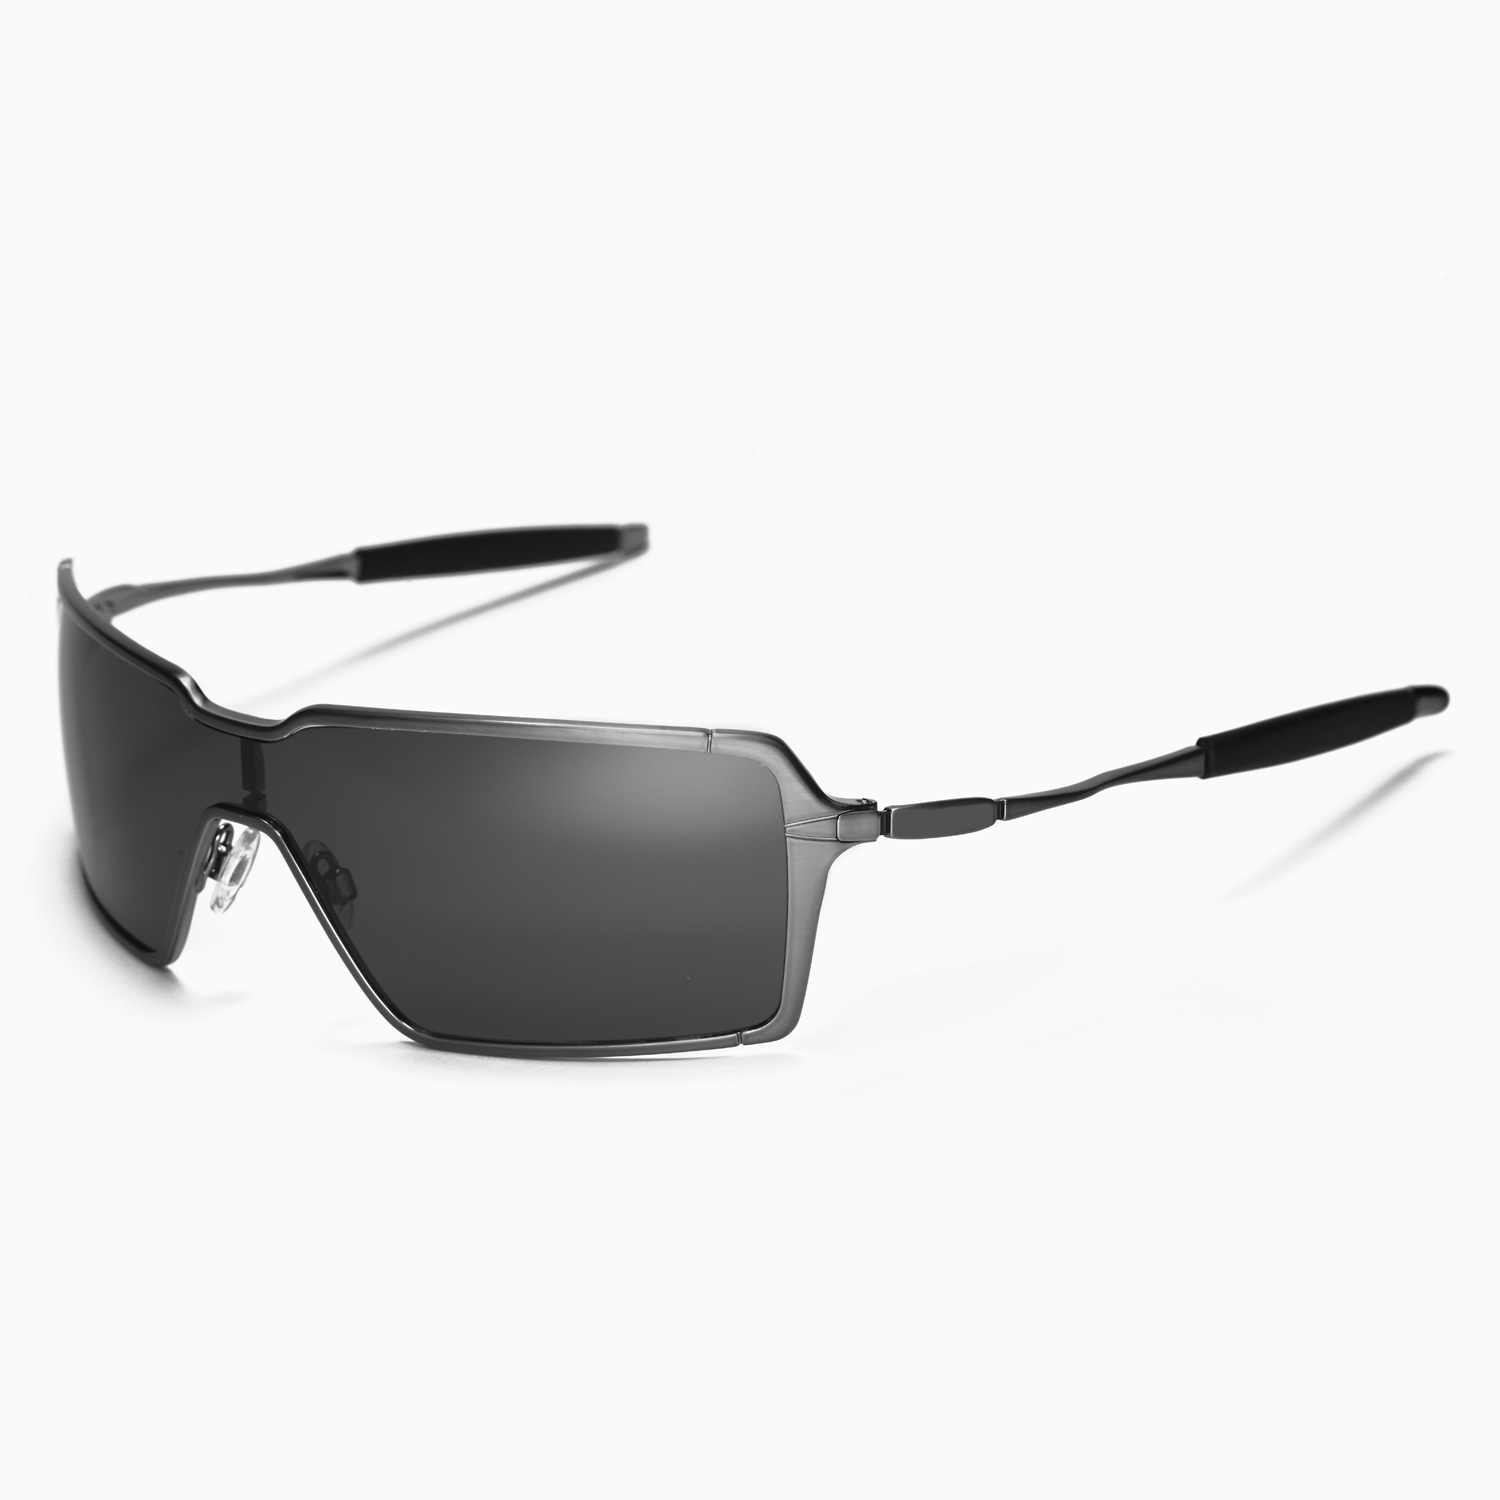 Ebay Sunglasses Oakley